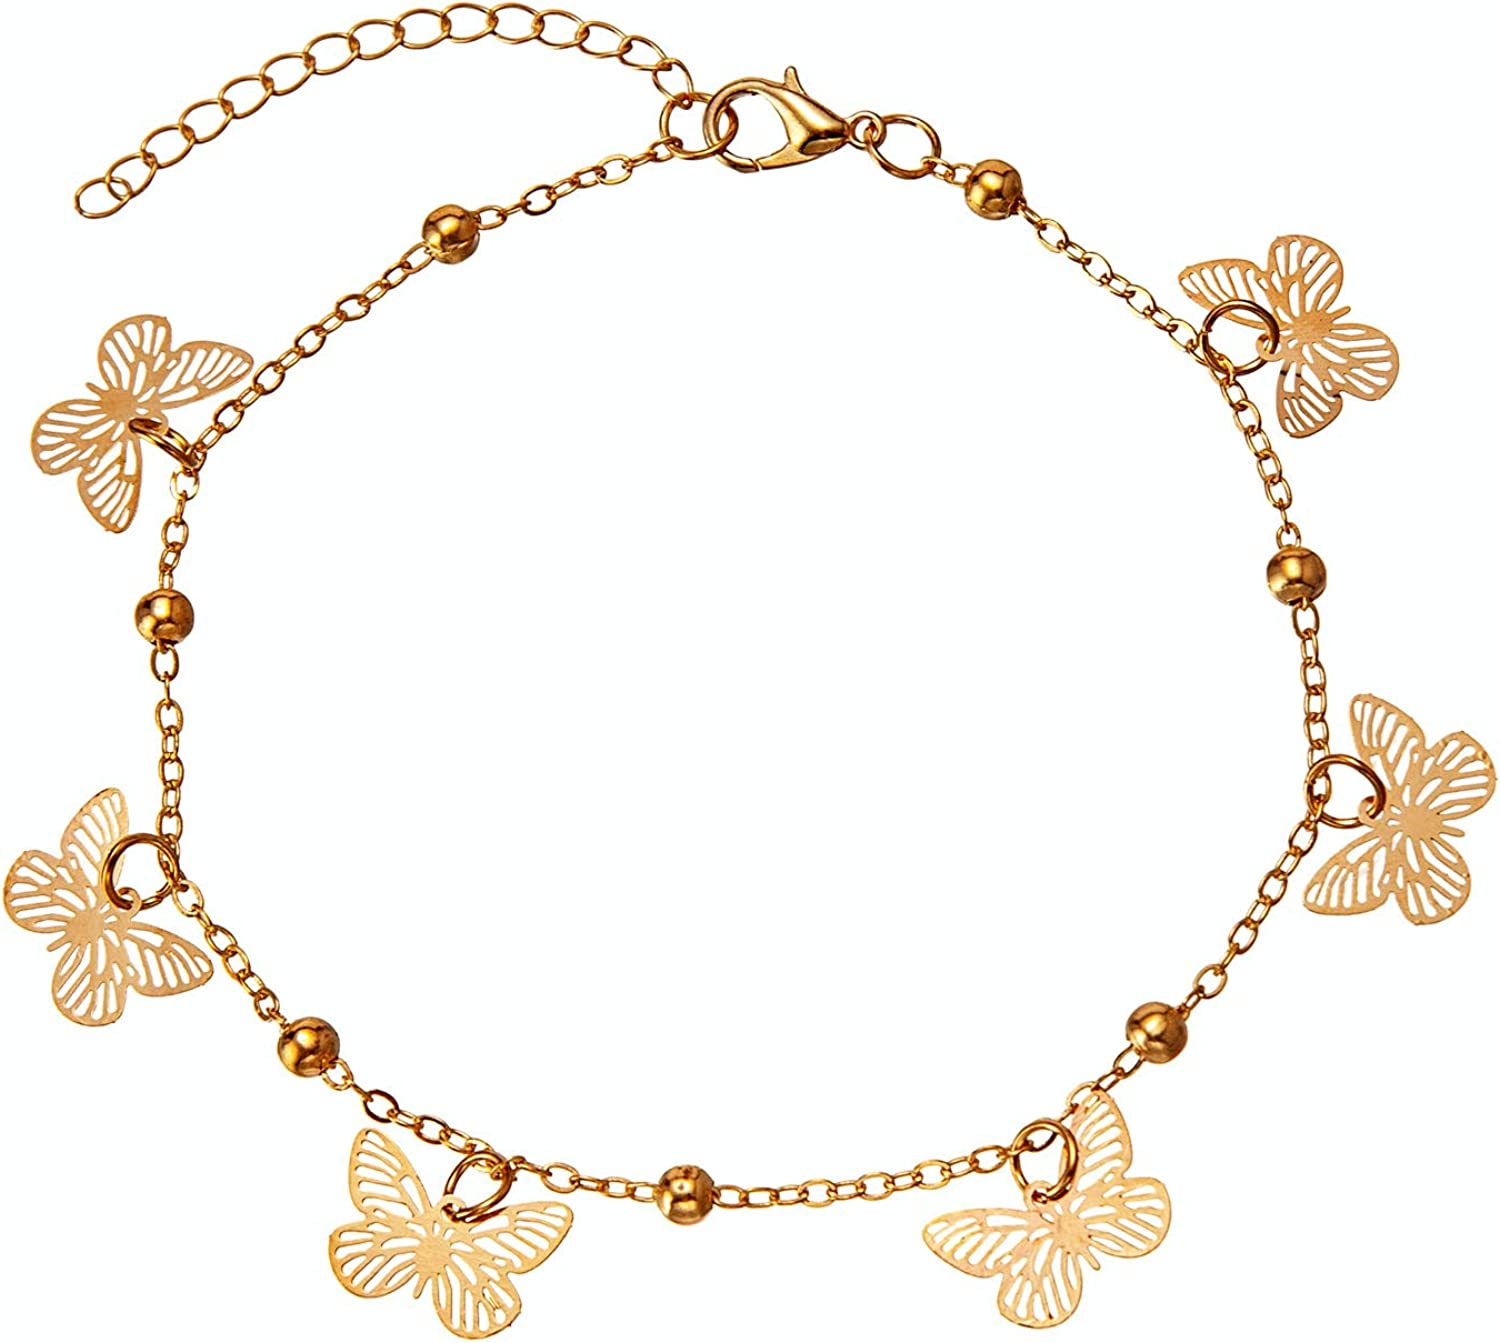 kelistom Butterfly Anklet for Women Teen Girls Gold/Silver Plated Link Chain Ankle Bracelet with Extension